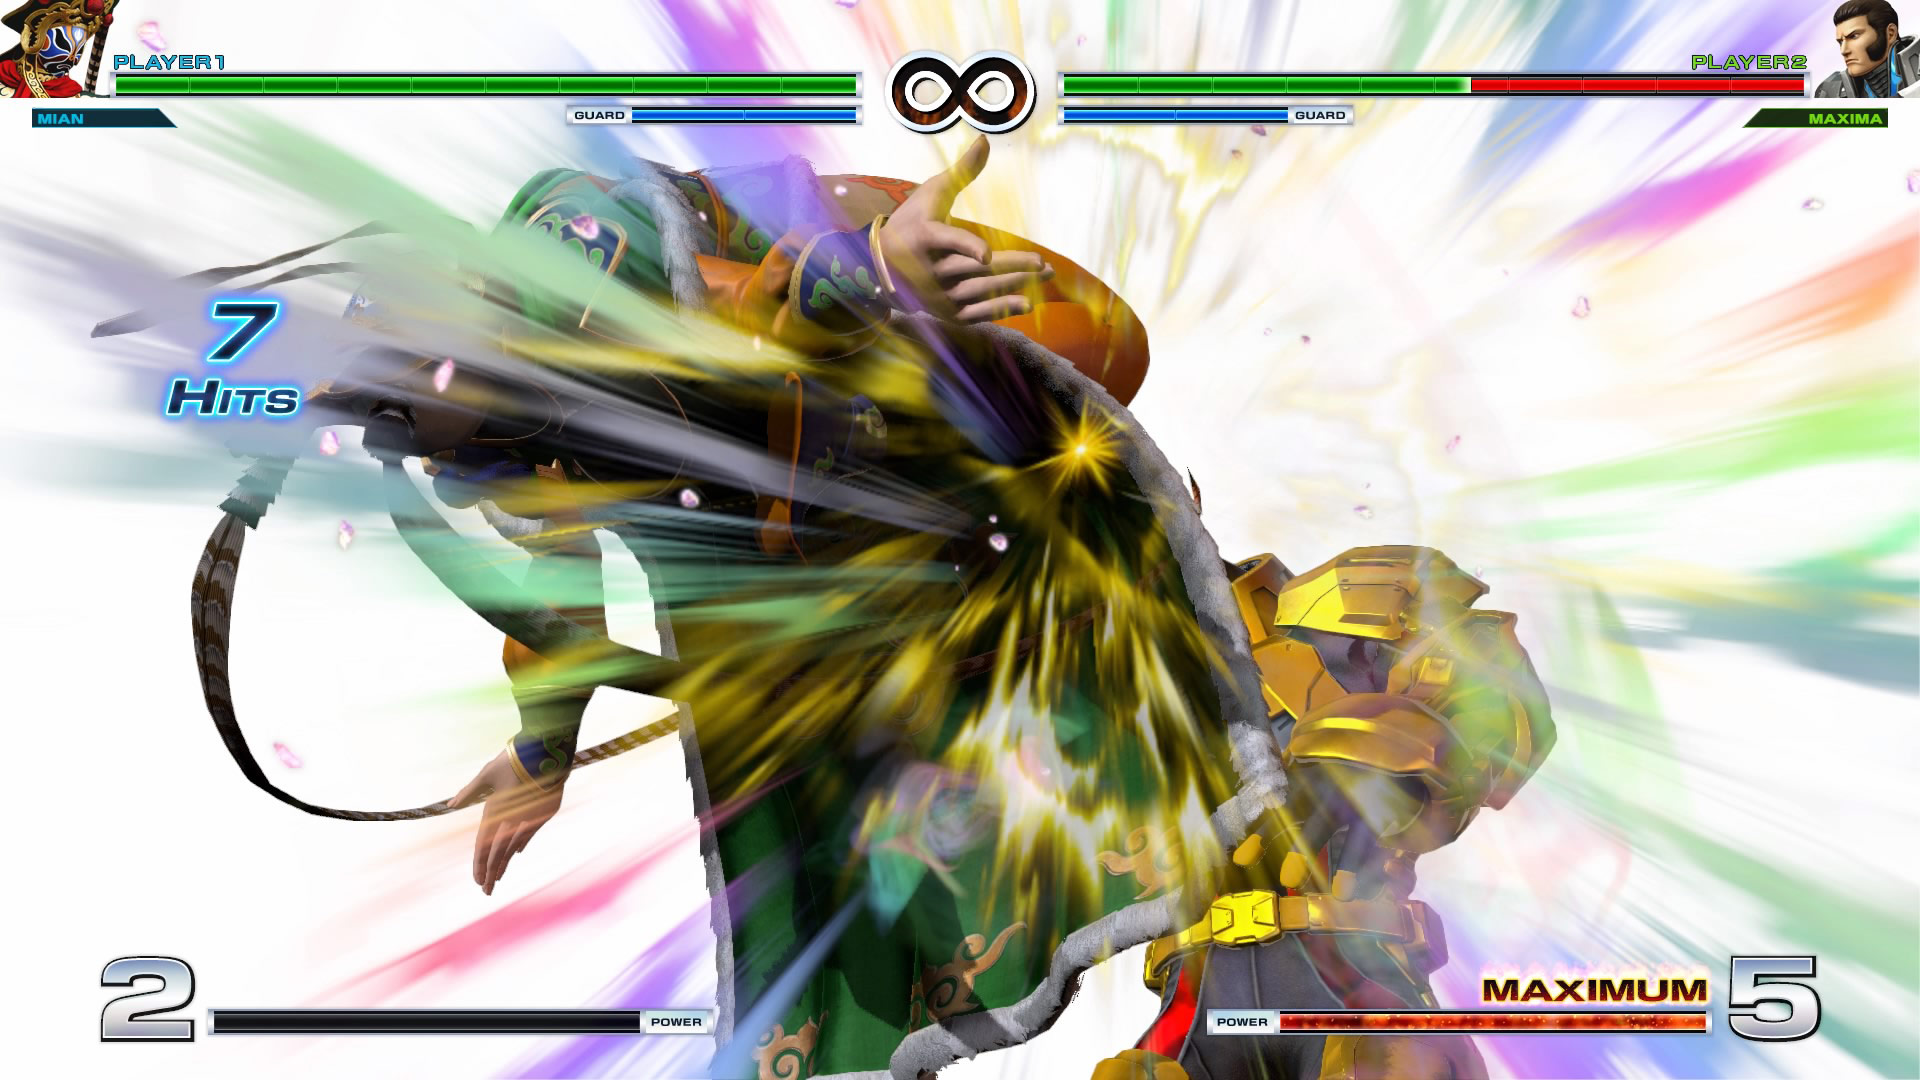 King of Fighters 14 1.10 graphics update 43 out of 60 image gallery